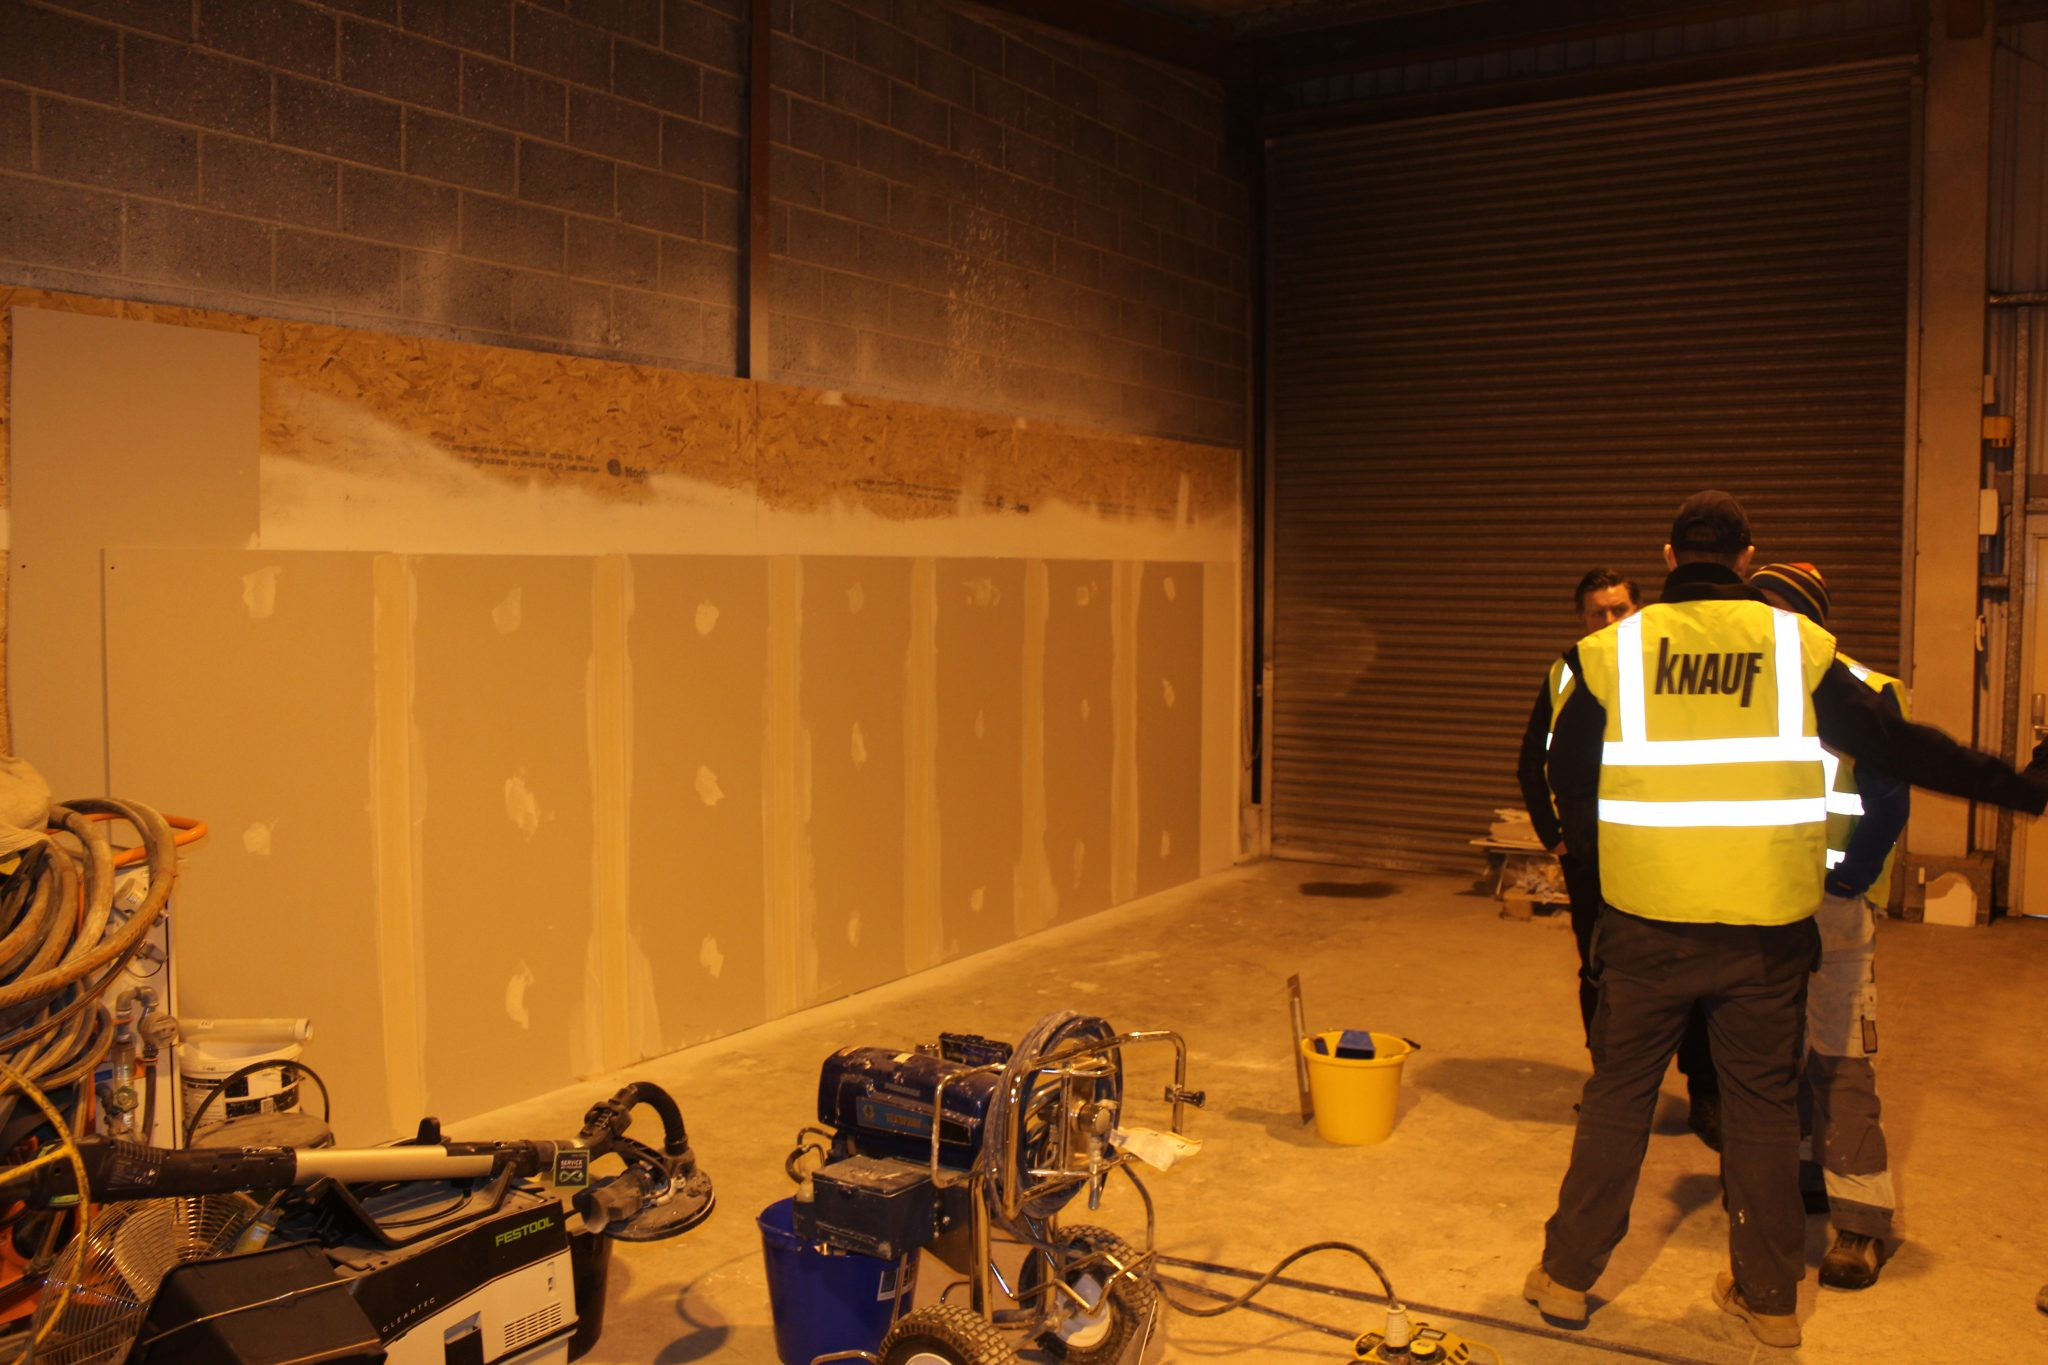 A Day With Knauf Airless Plaster - Plasterers News